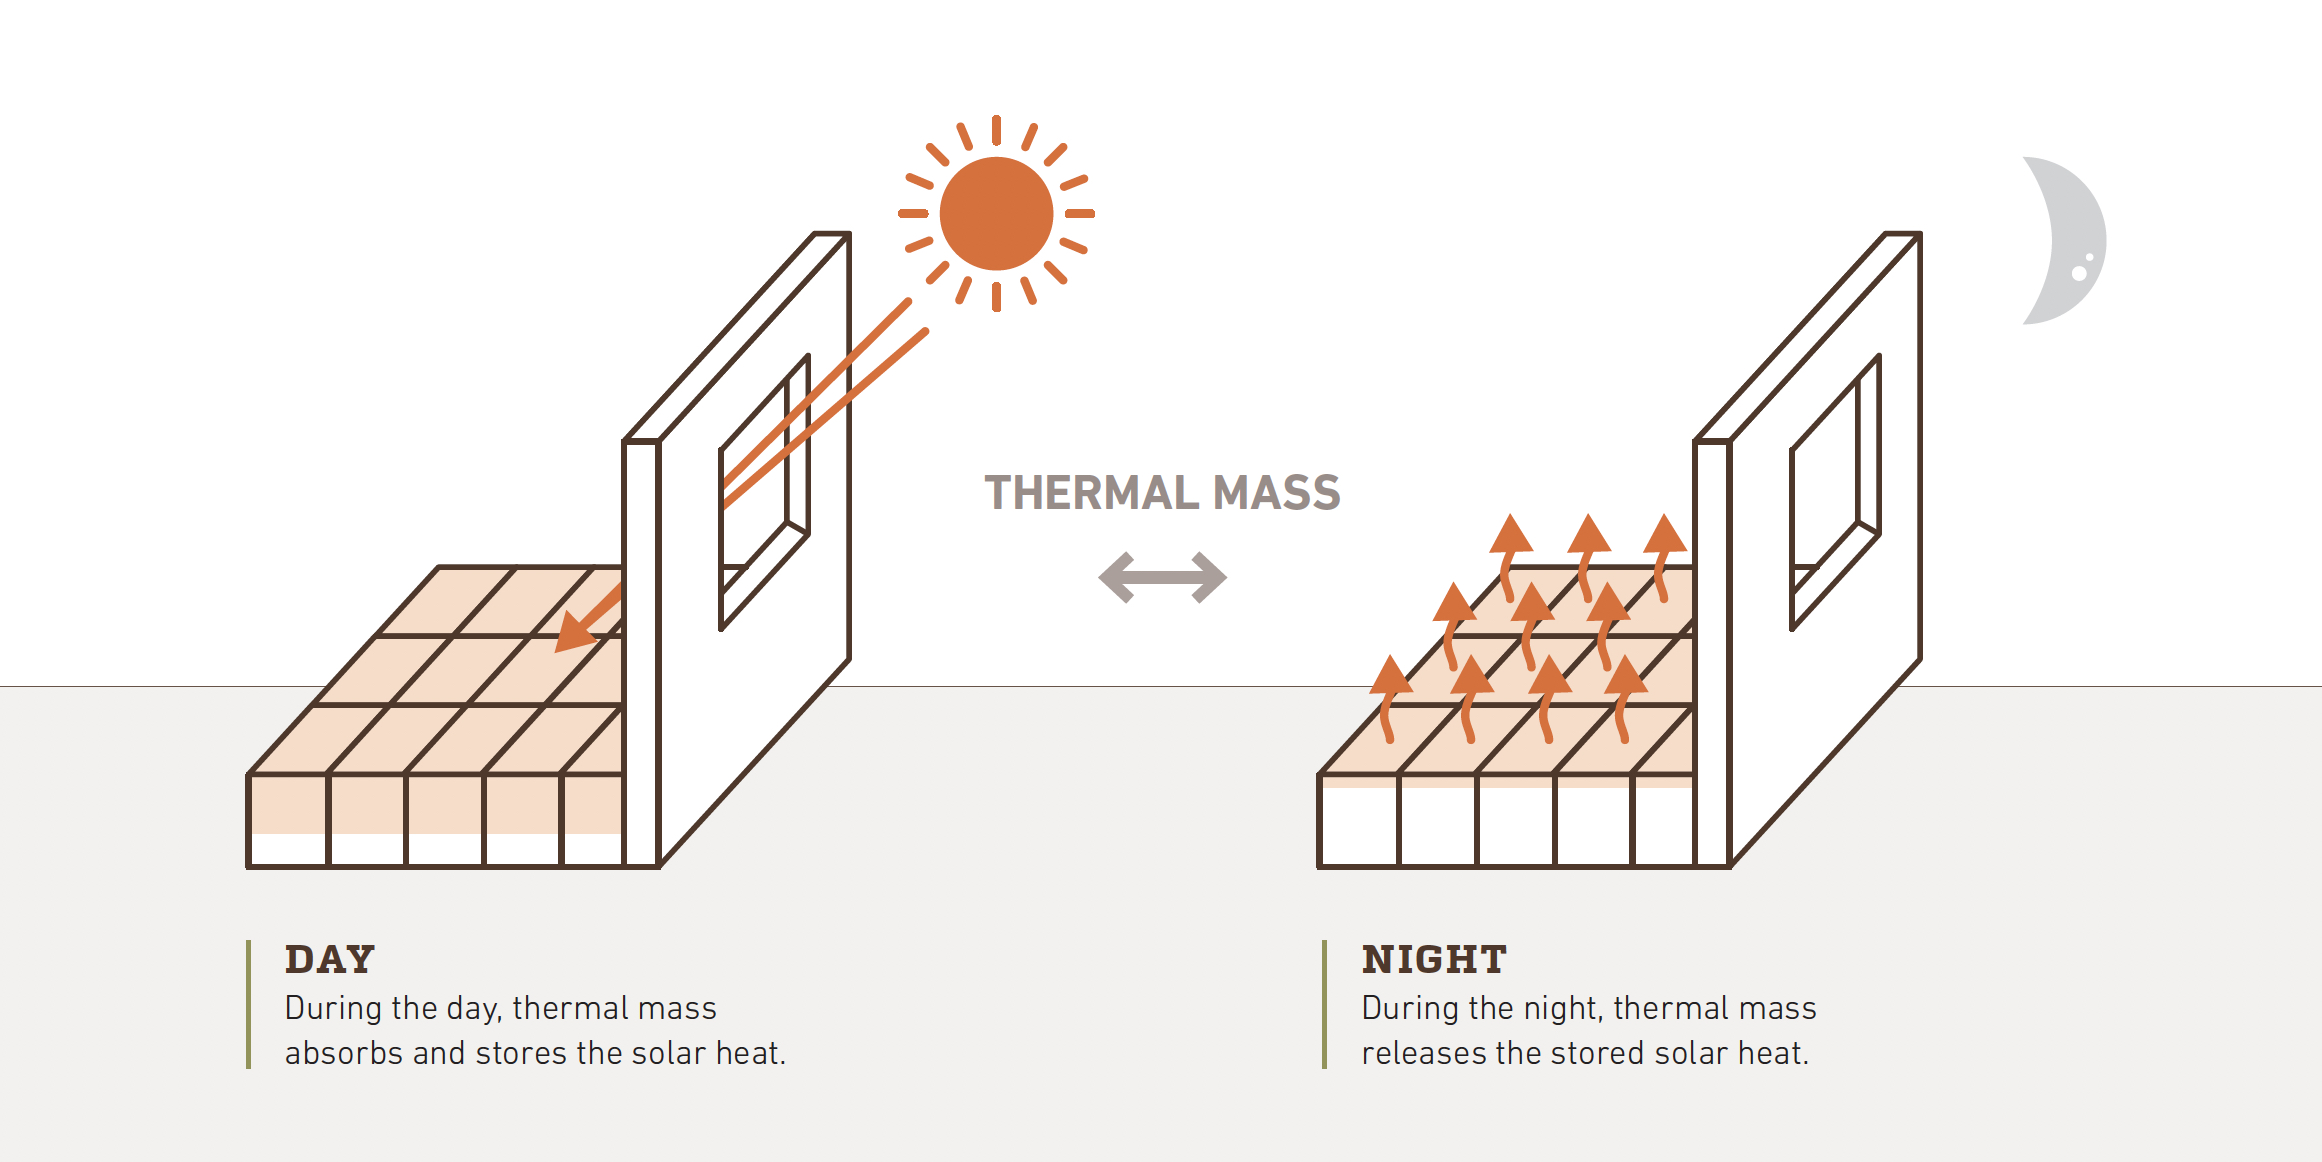 thermal mass stores heat during the day, which is released at night